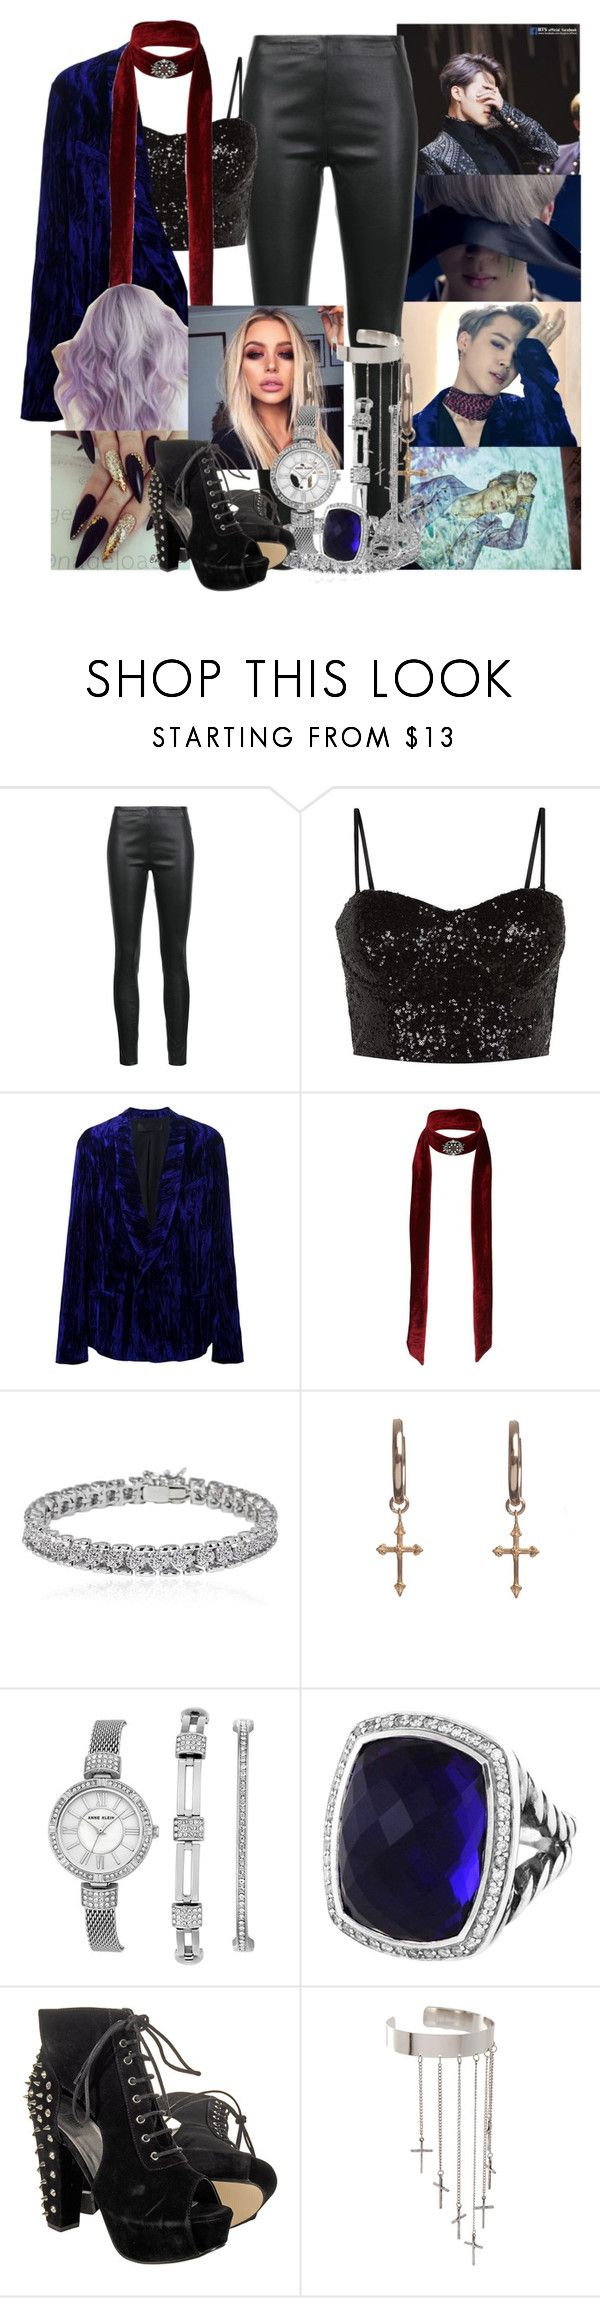 """Blood, Sweat and Tears Female BTS - Jimin"" by elliepetkova ❤ liked on Polyvore featuring Veronica Beard, Haider Ackermann, Miss Selfridge, Apples & Figs, Rachel Entwistle, Anne Klein, David Yurman and ASOS"